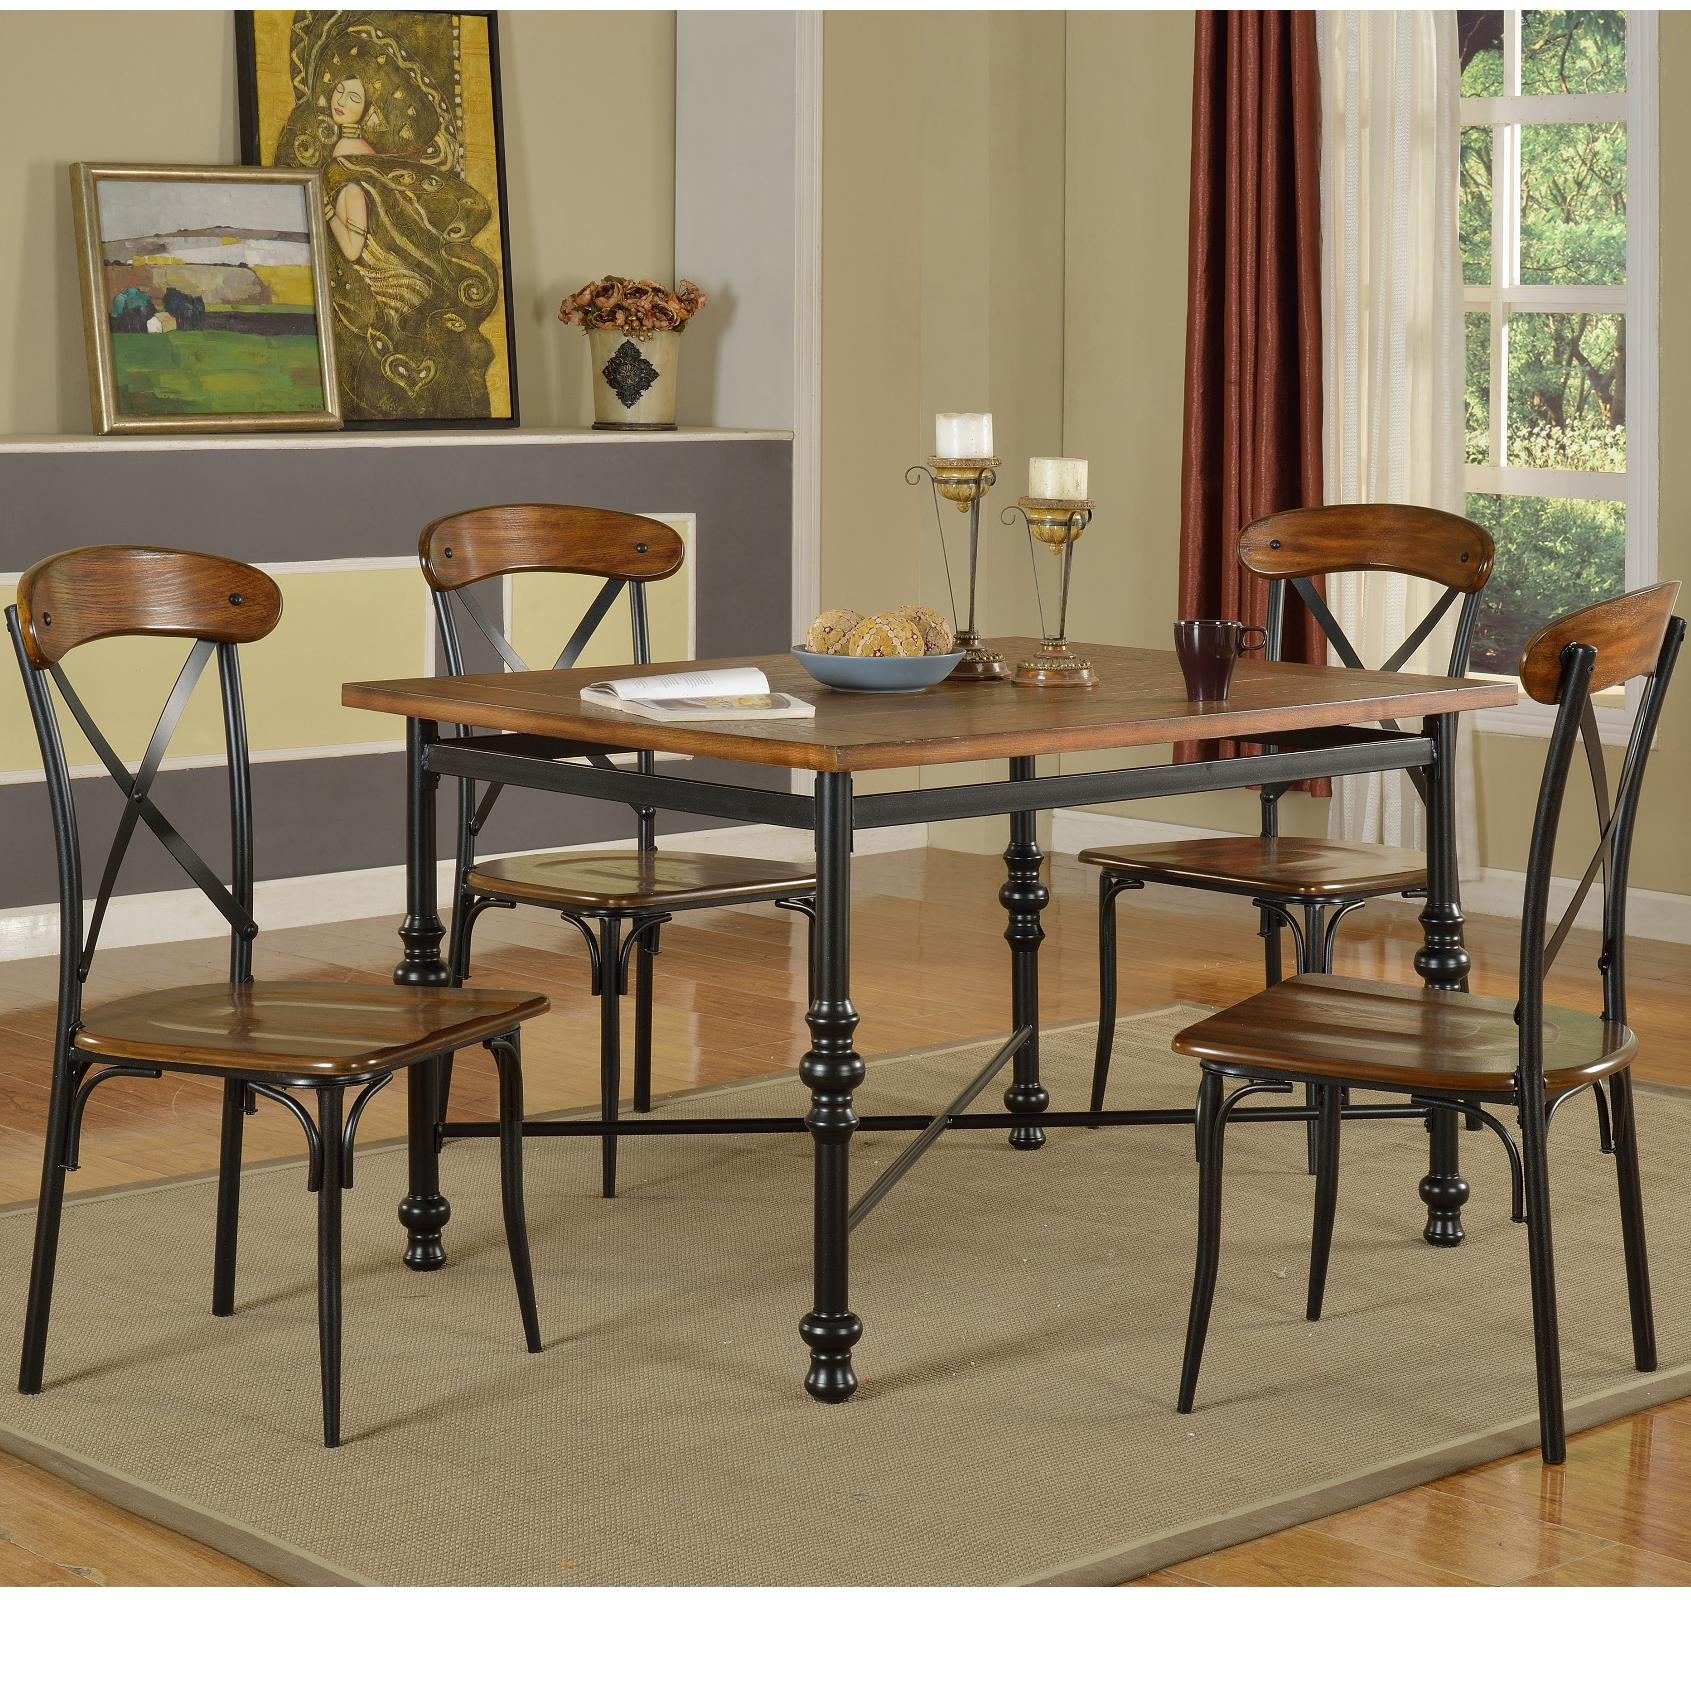 lifestyle dc222 pub table with 4 side chairs royal furniture